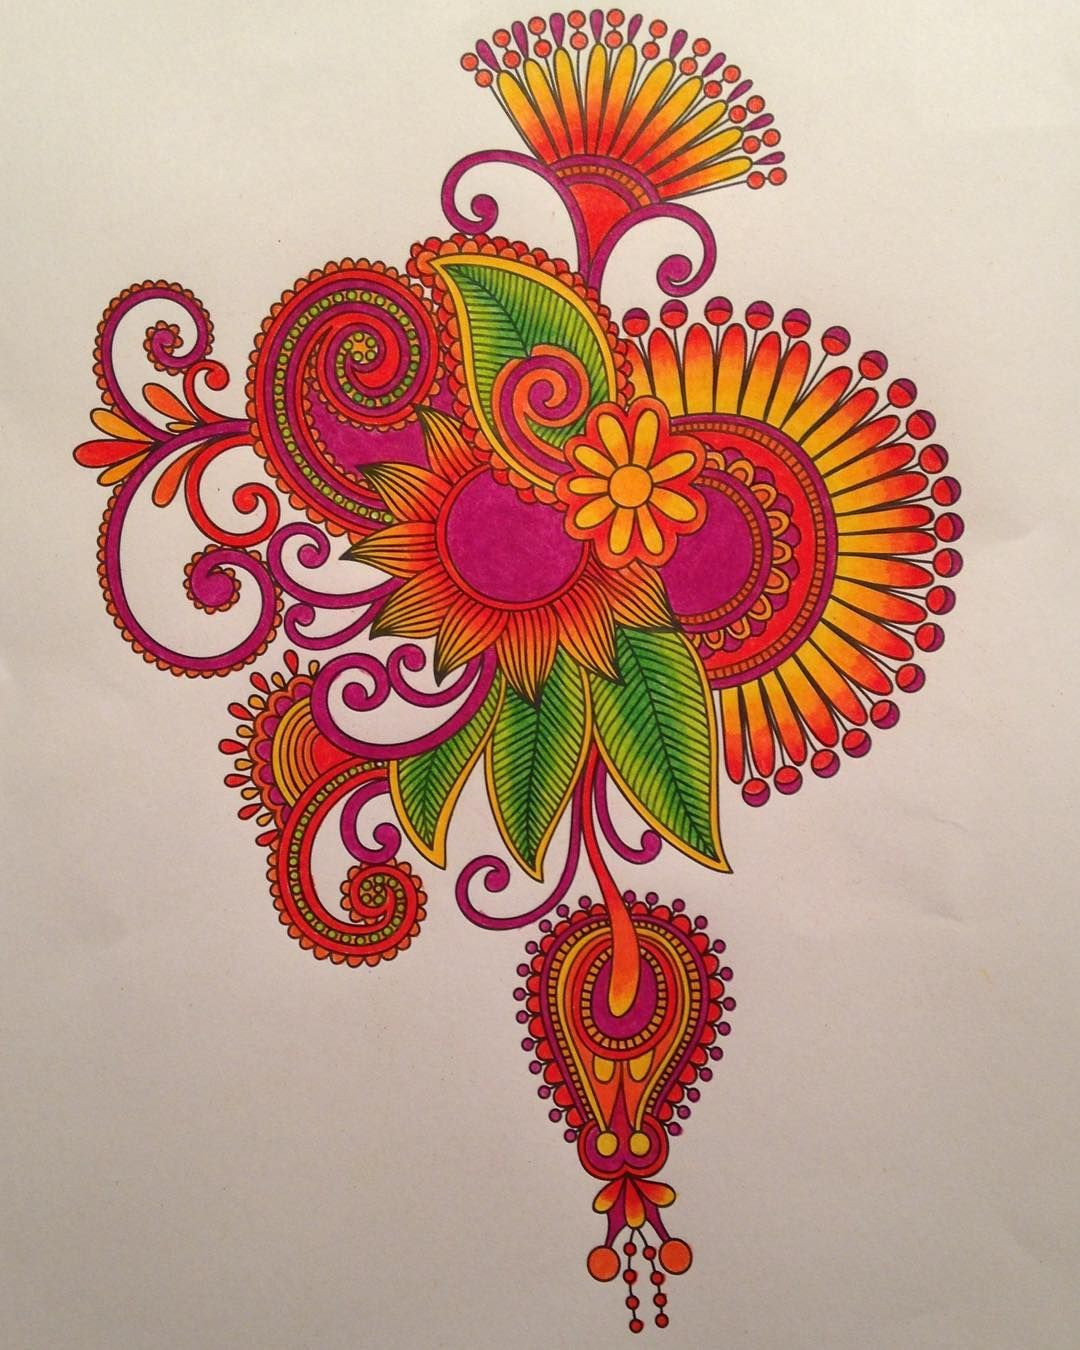 Posh coloring book soothing designs for fun and relaxation - Completed Coloring Page From Just Add Color Tattoos